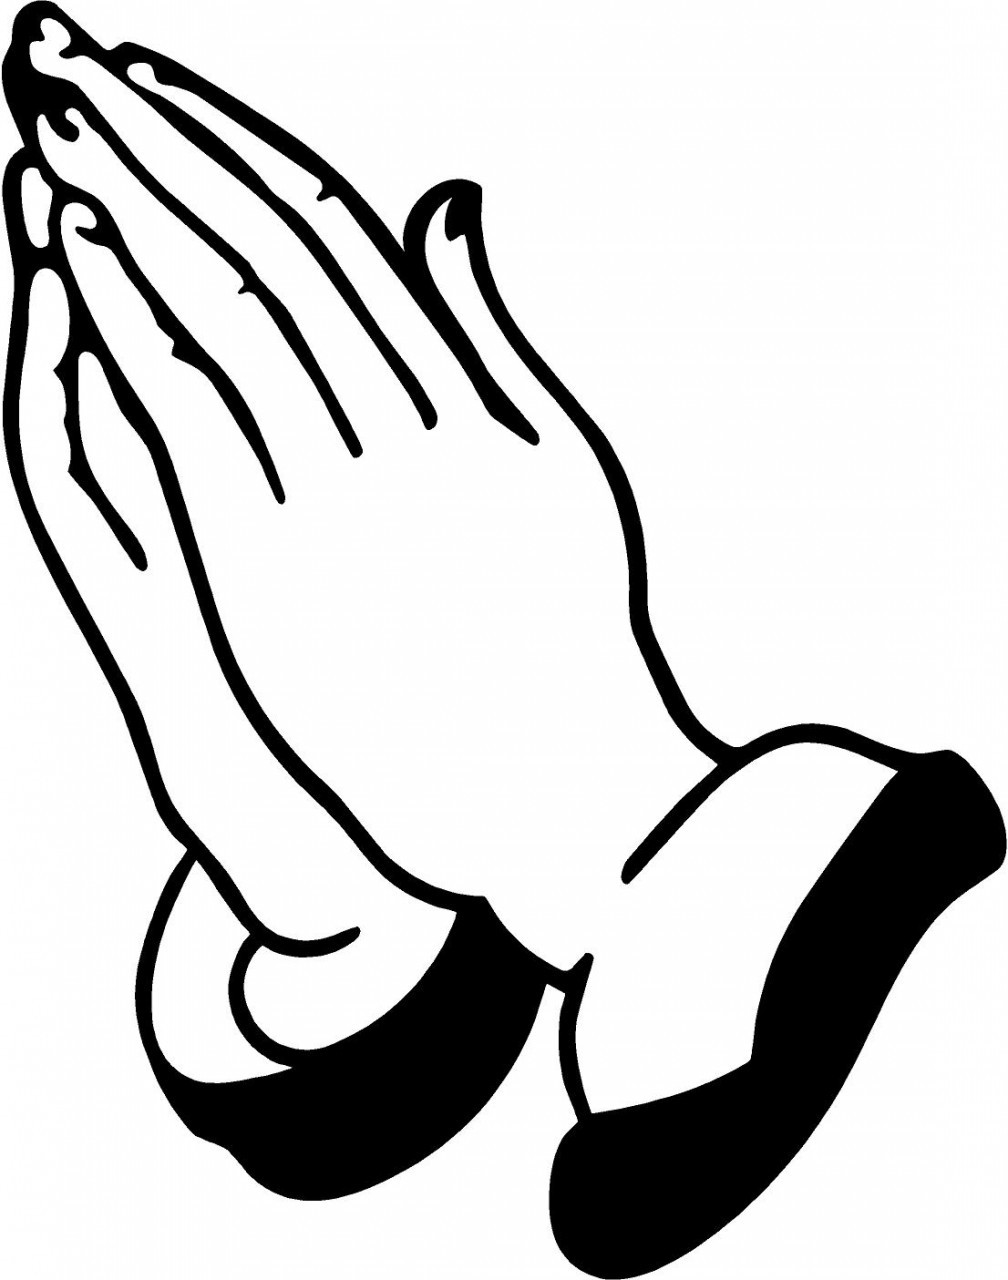 1008x1280 Praying Hands Praying Hand Child Prayer Hands Clip Art Clipartcow